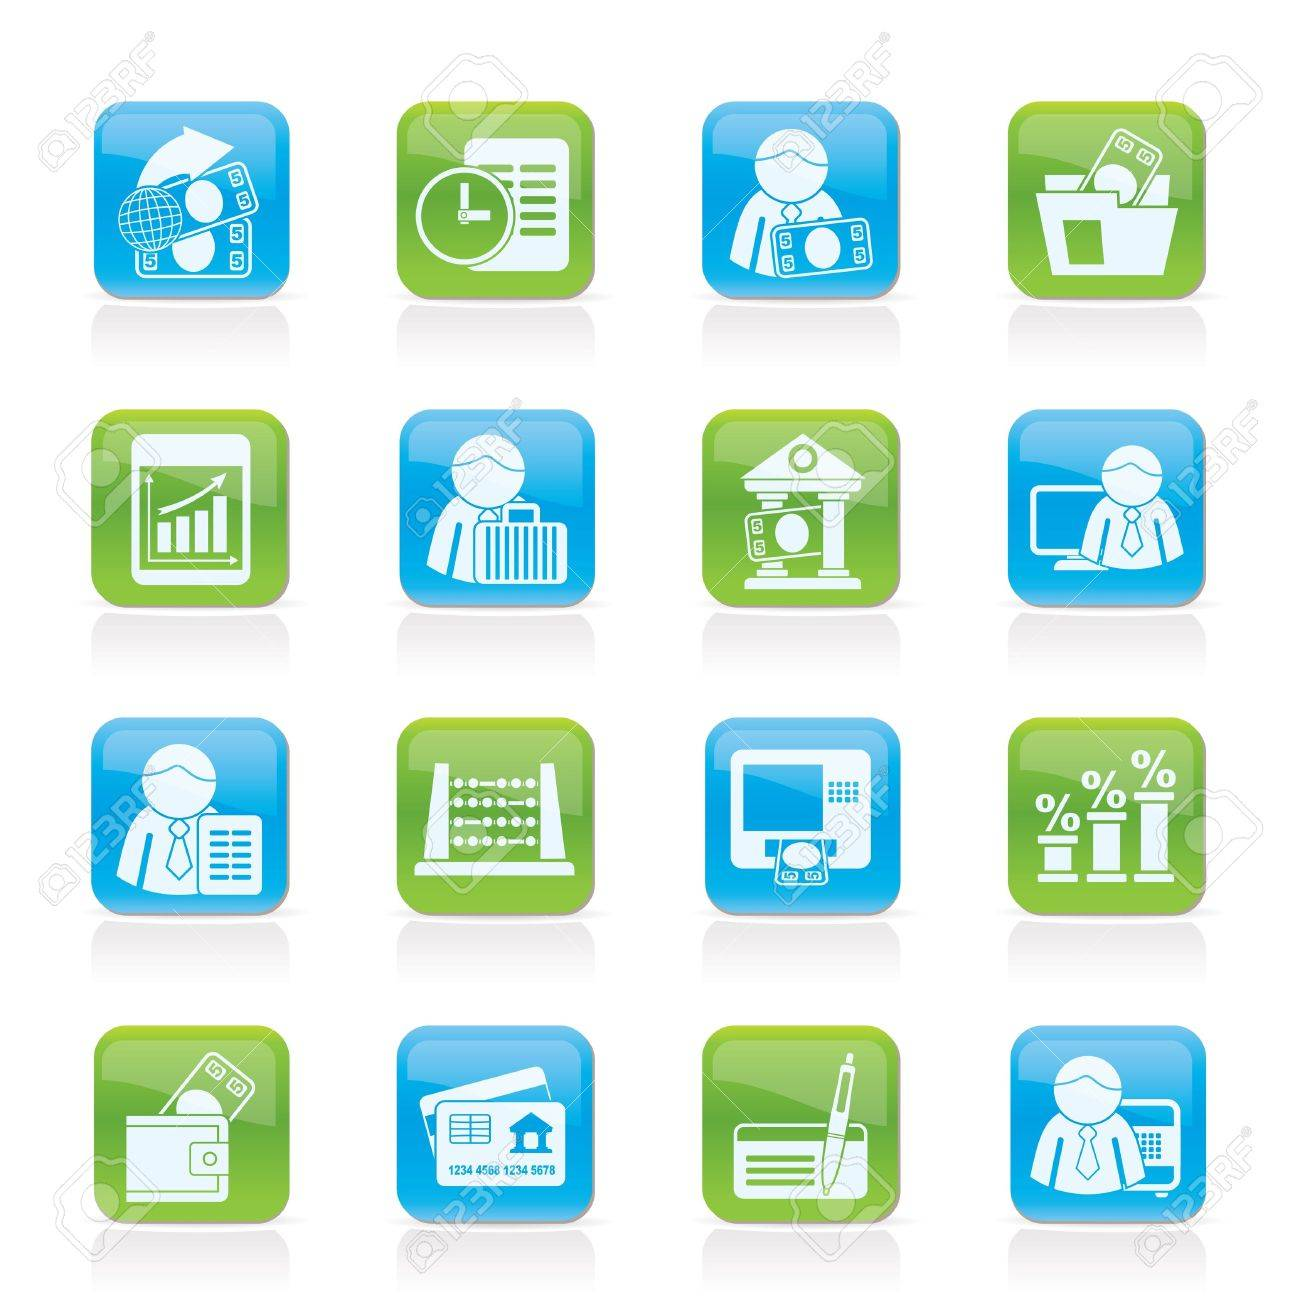 Bank and Finance Icons - Vector Icon Set Stock Vector - 11381848